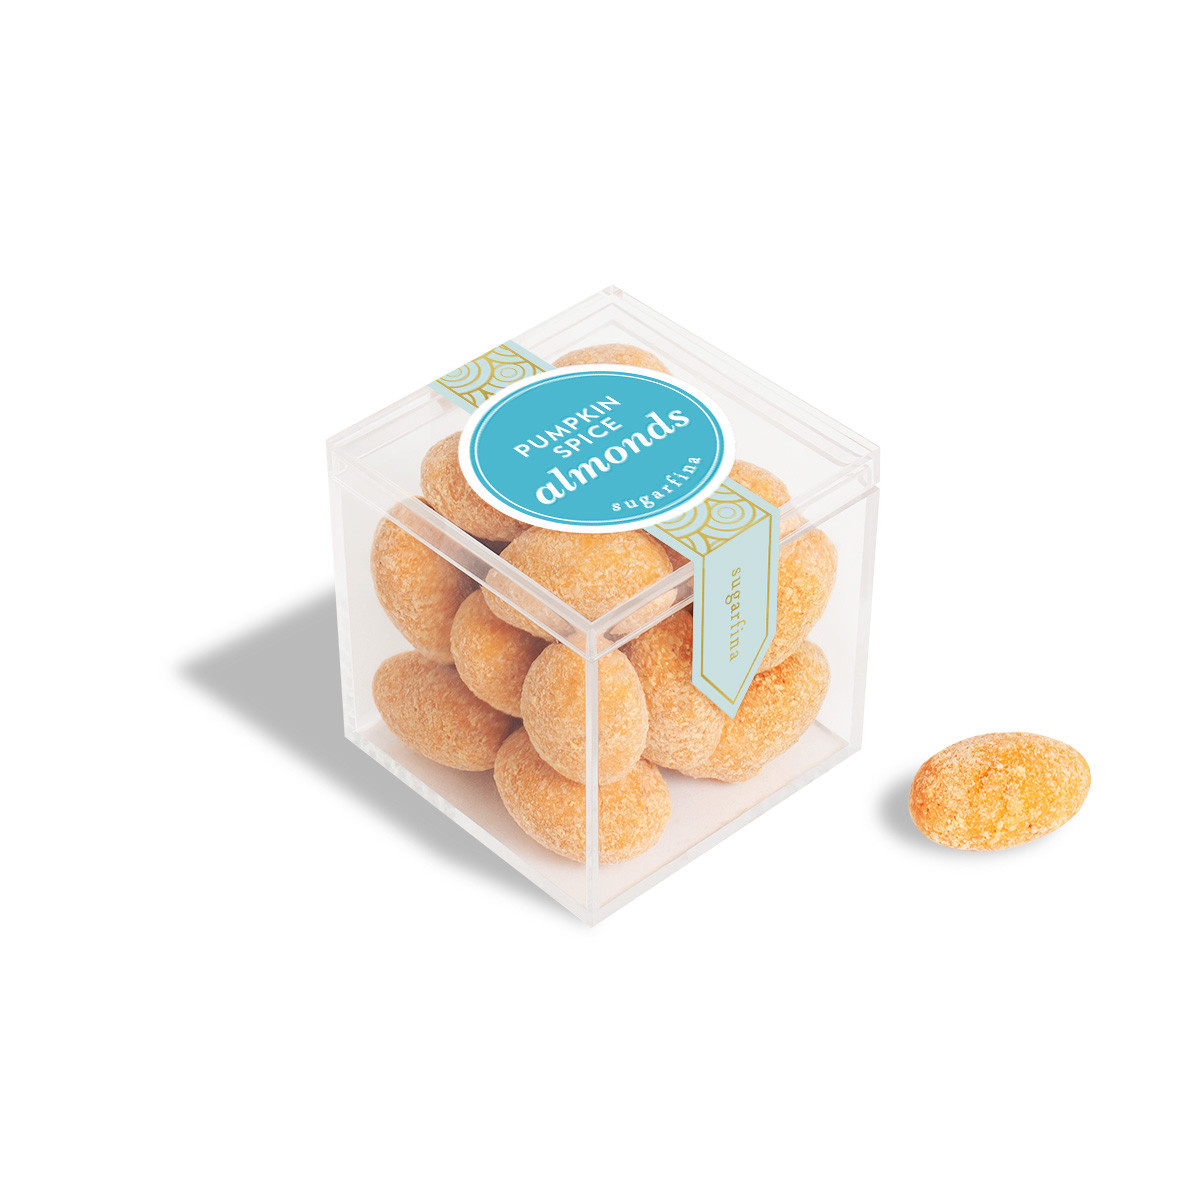 Sugarfina Pumpkin Spice Almonds